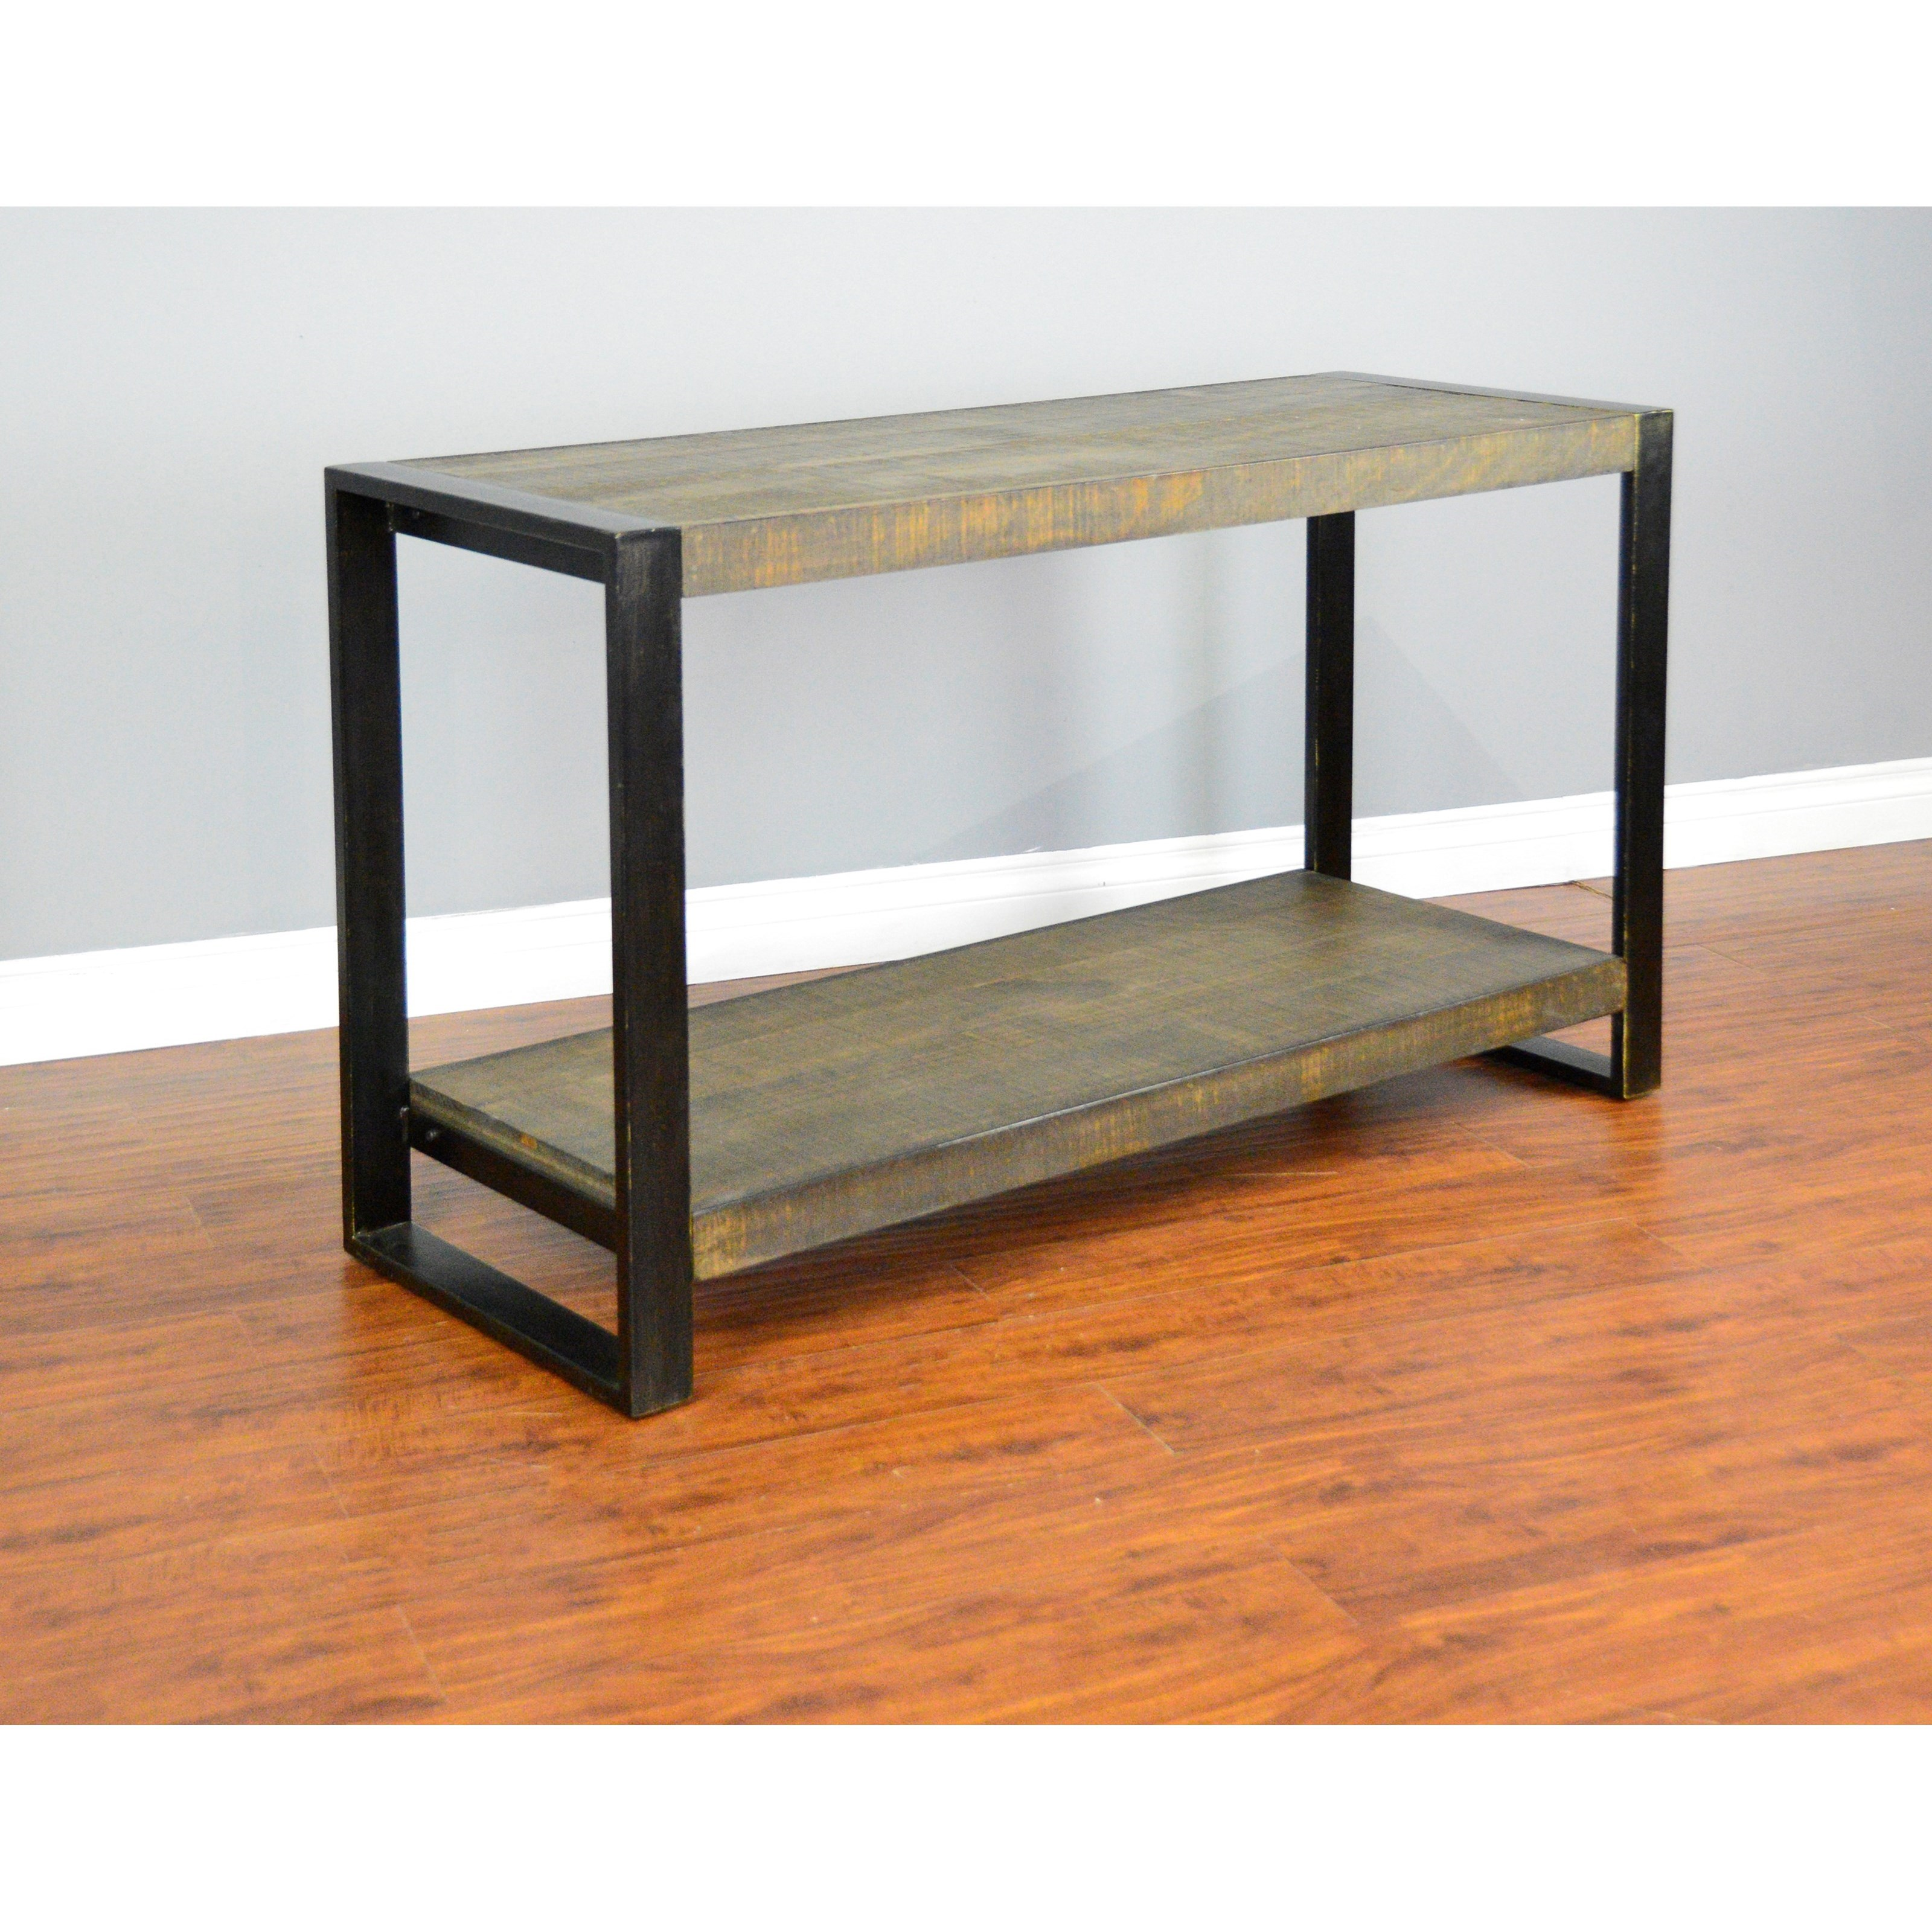 Console Tables With Picture Frames ~ Distressed pine sofa console table with industrial metal